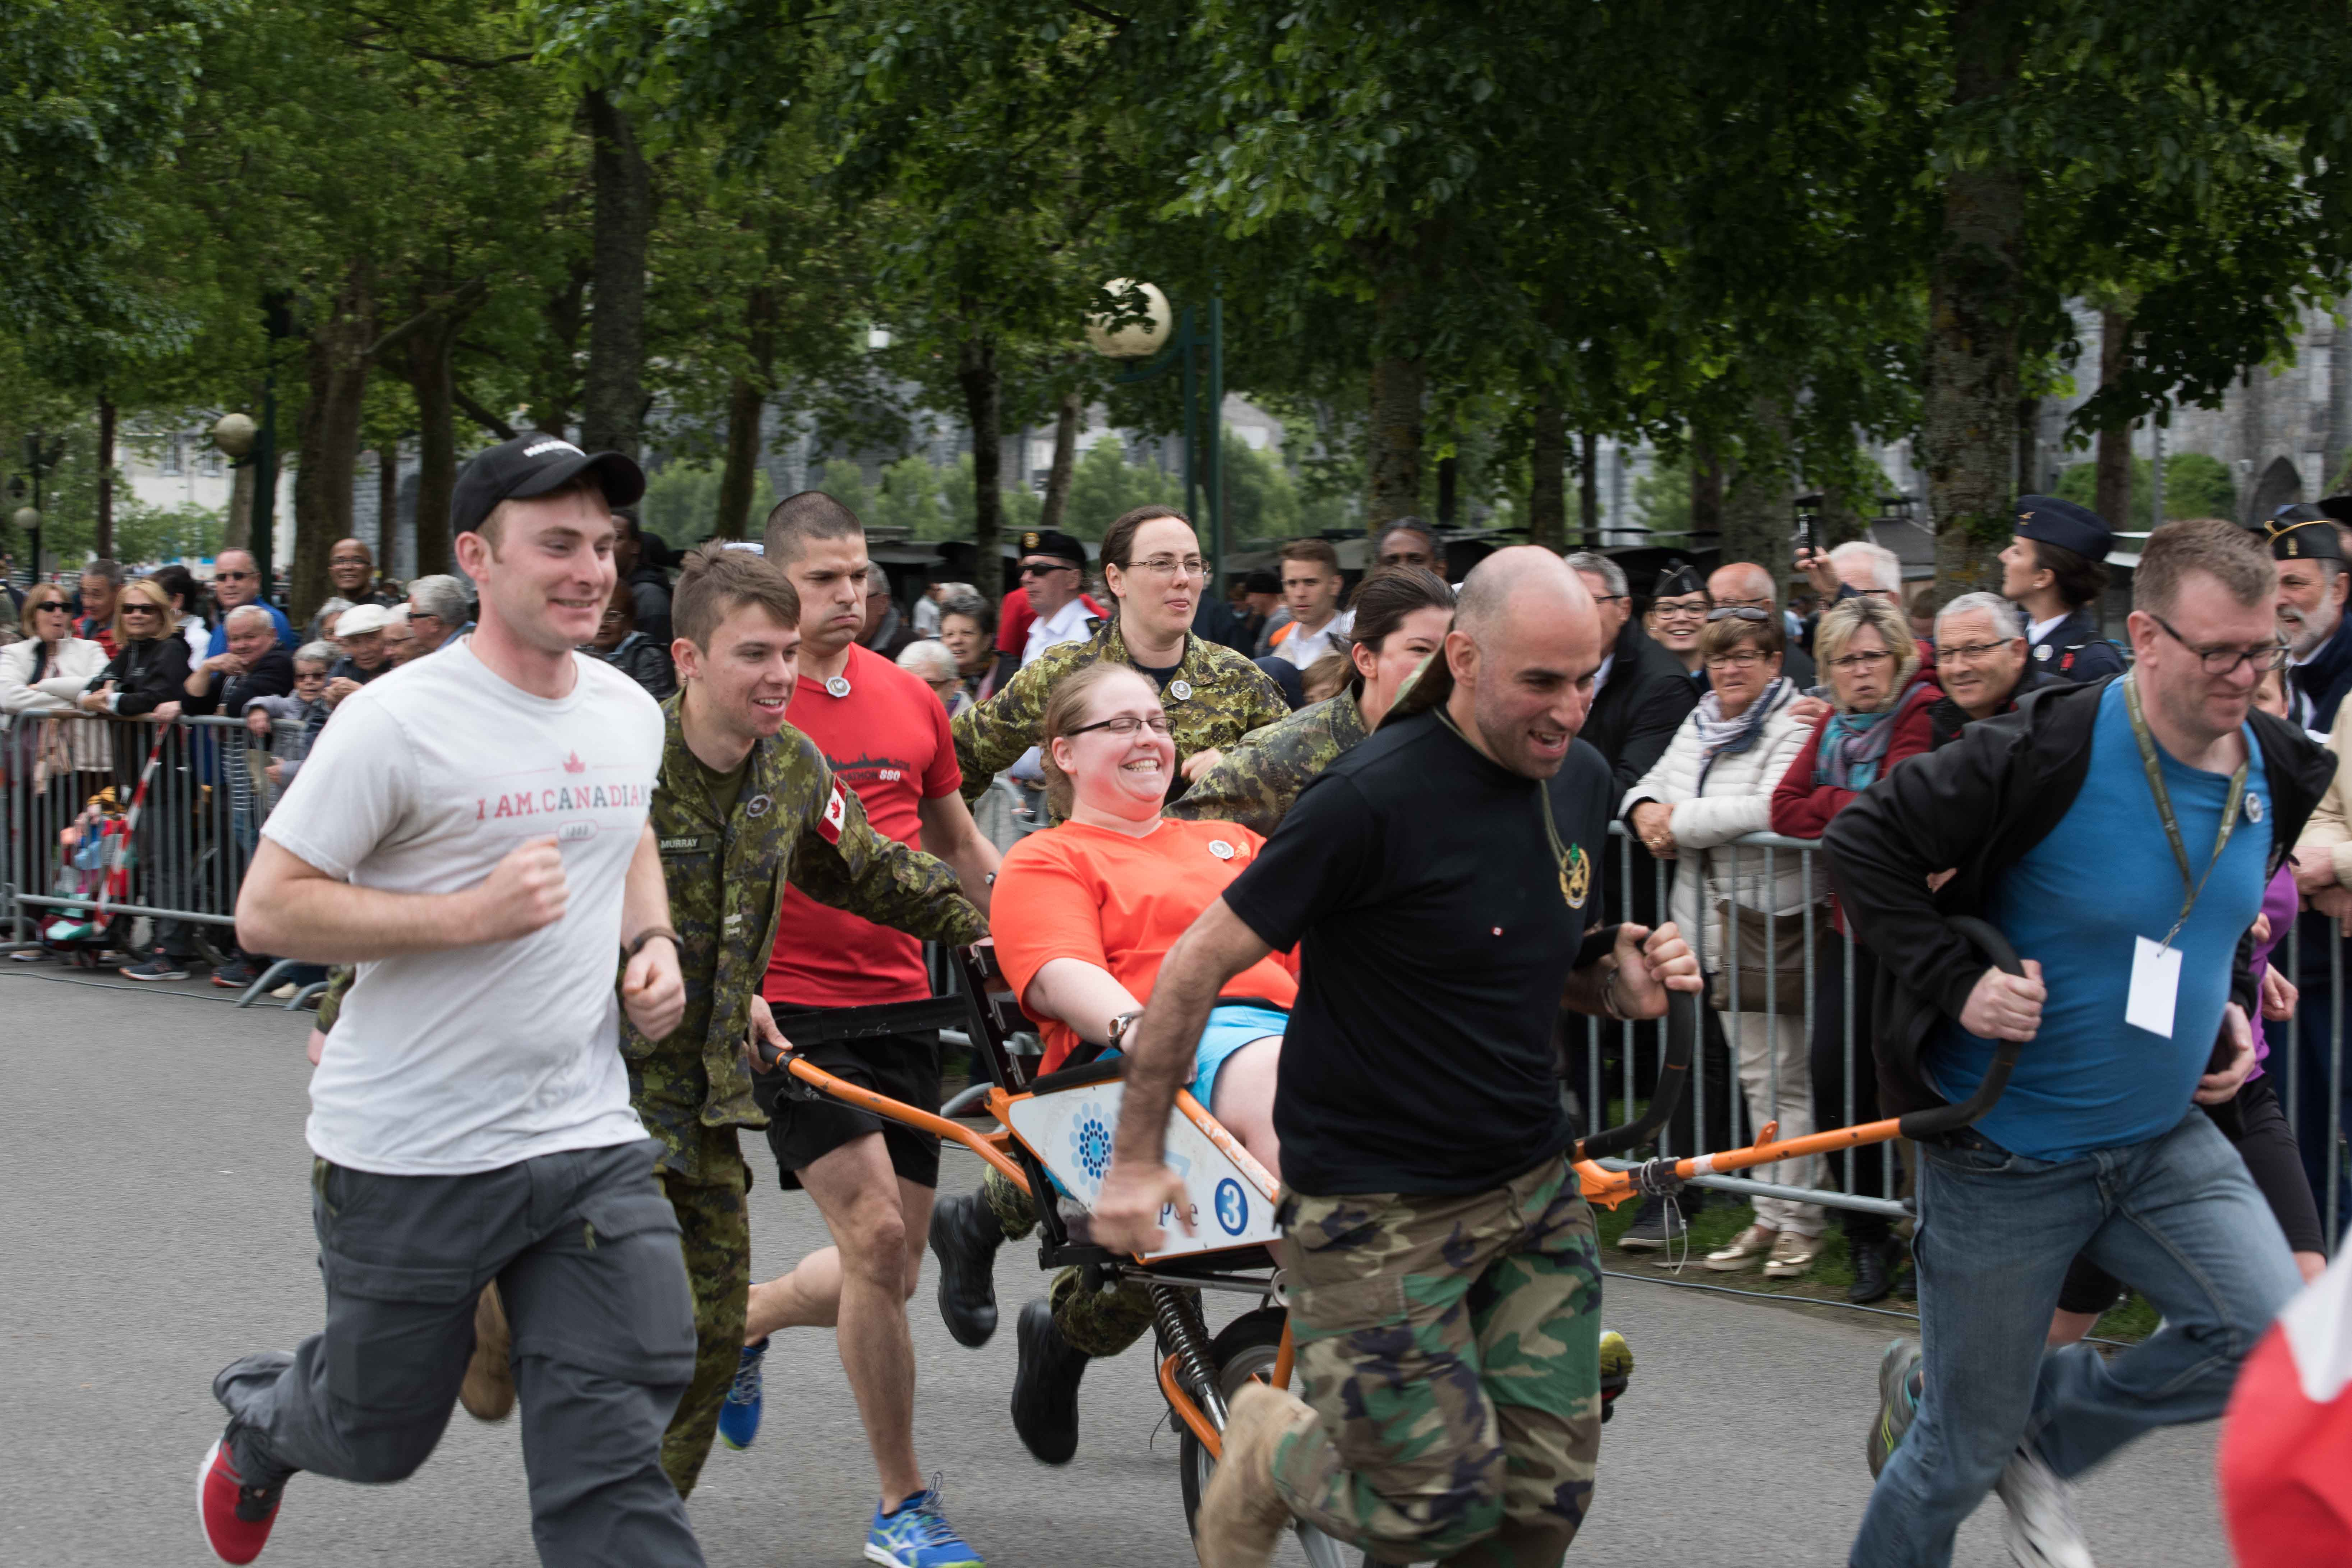 "Members of the Canadian Armed Forces Contingent participate in the sports challenge in Lourdes, France during the International Military Pilgrimage that was held May 19 to 21, 2017. Photo: Sergeant Dwayne ""George"" Janes, Army Public Affairs. ©2017 DND/MDN Canada."